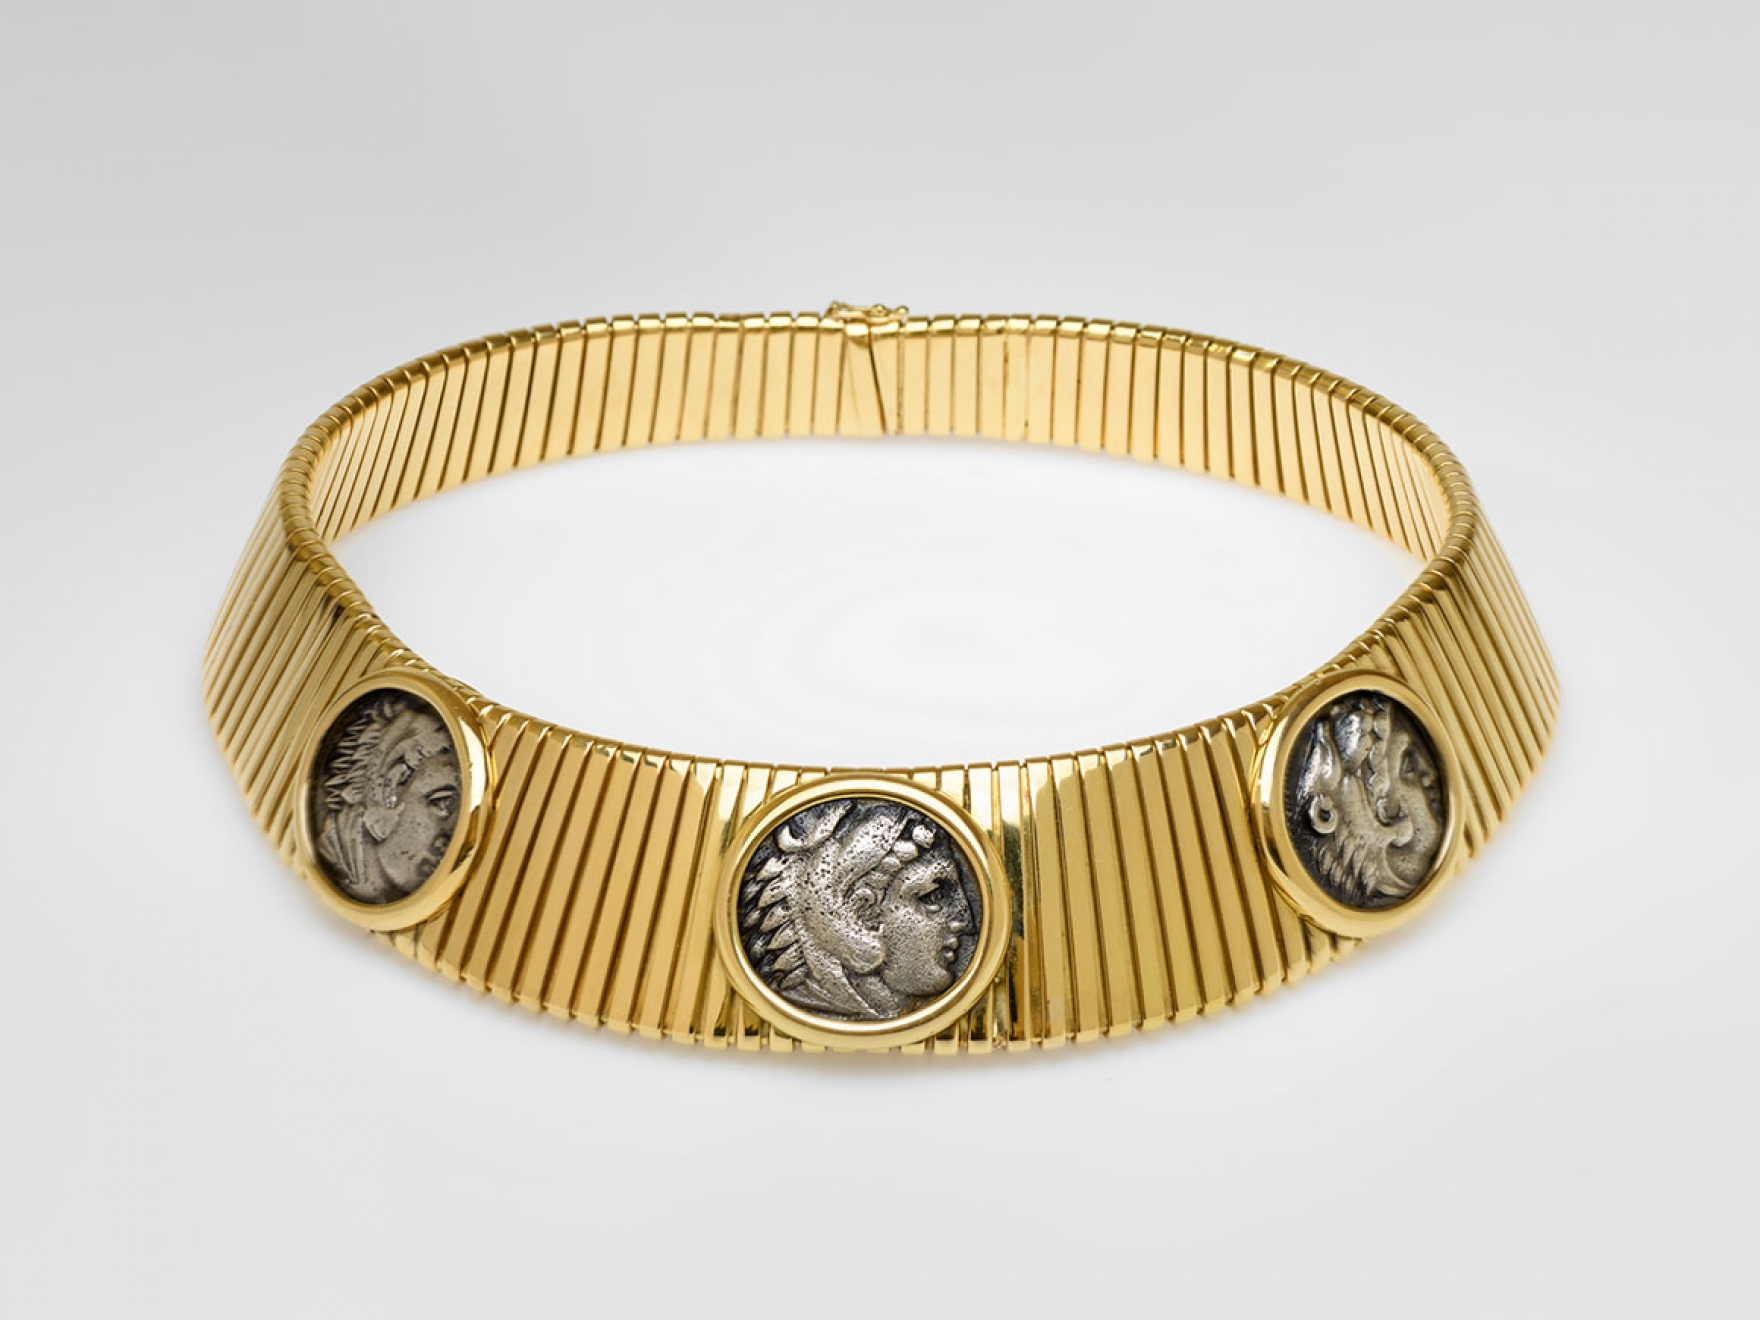 Bulgari necklace, with coins of Heracles made of gold and silver